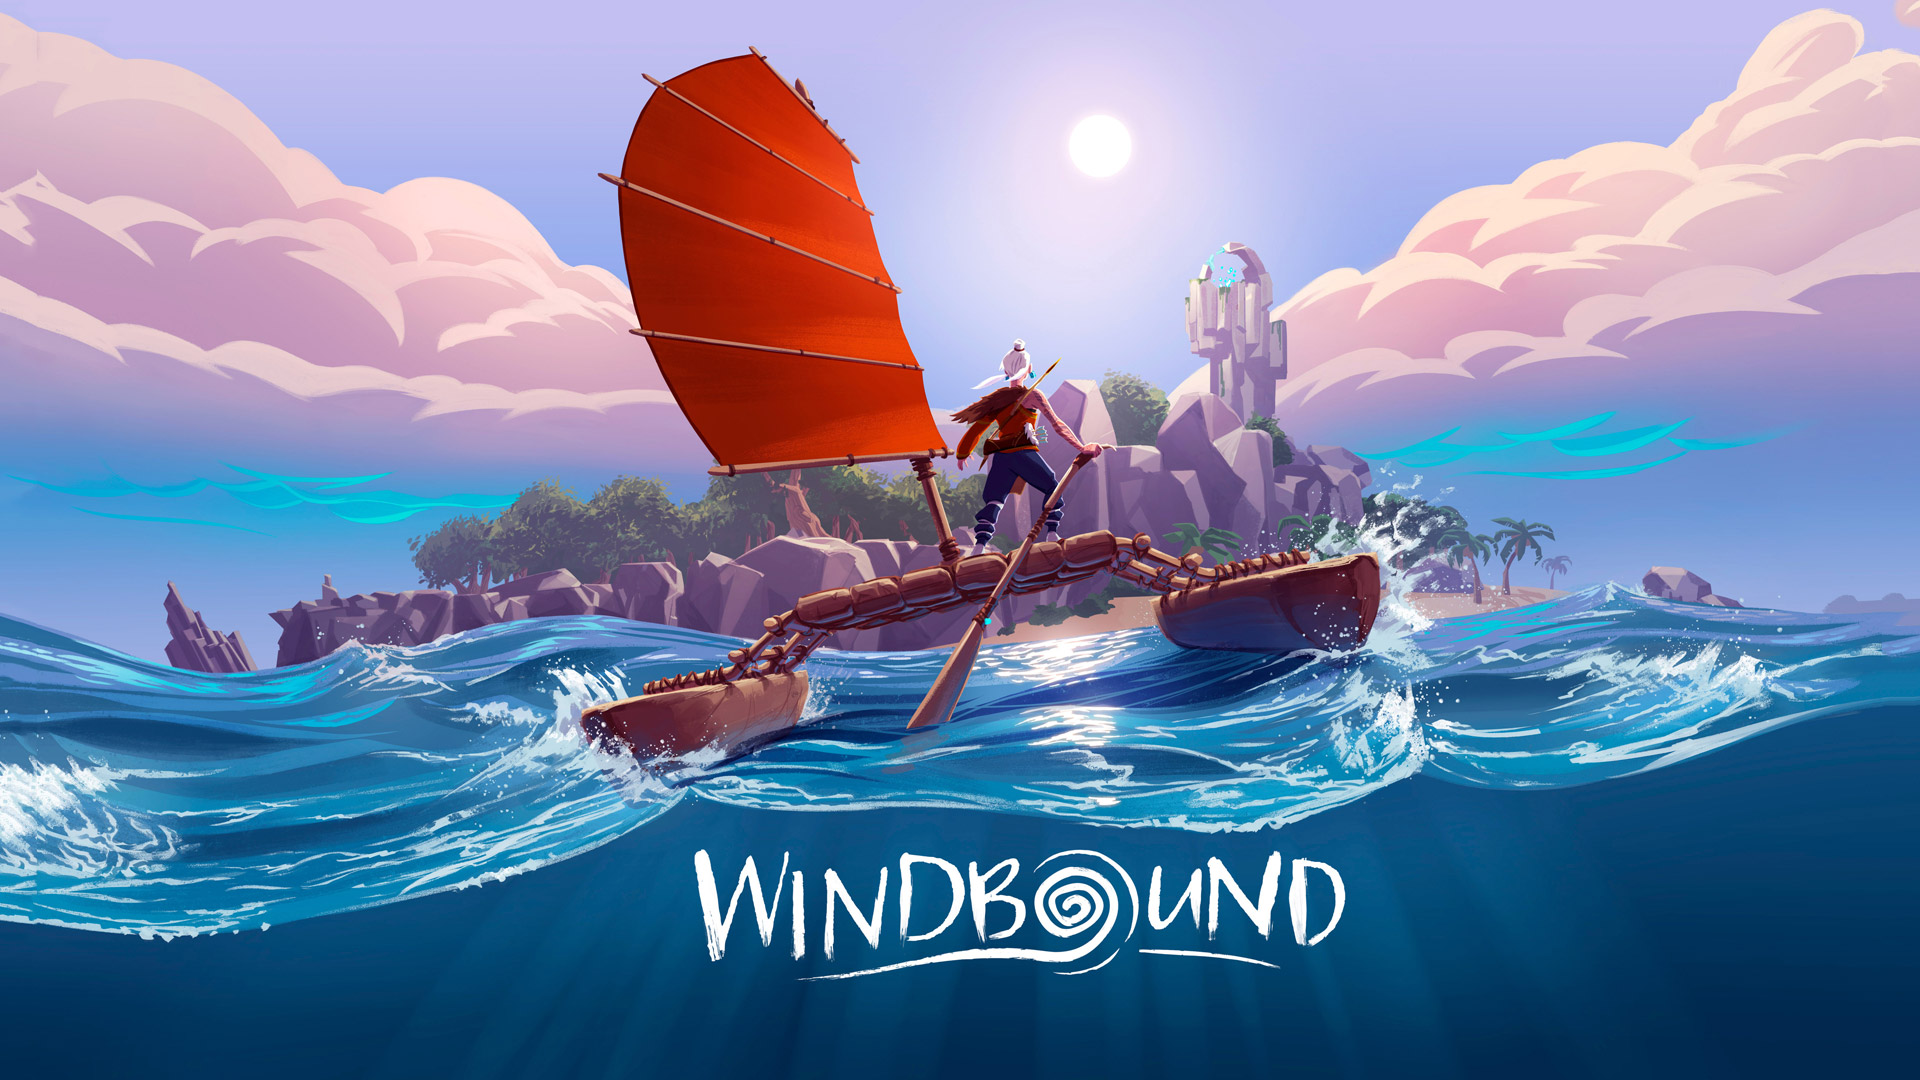 Free Windbound Wallpaper in 1920x1080